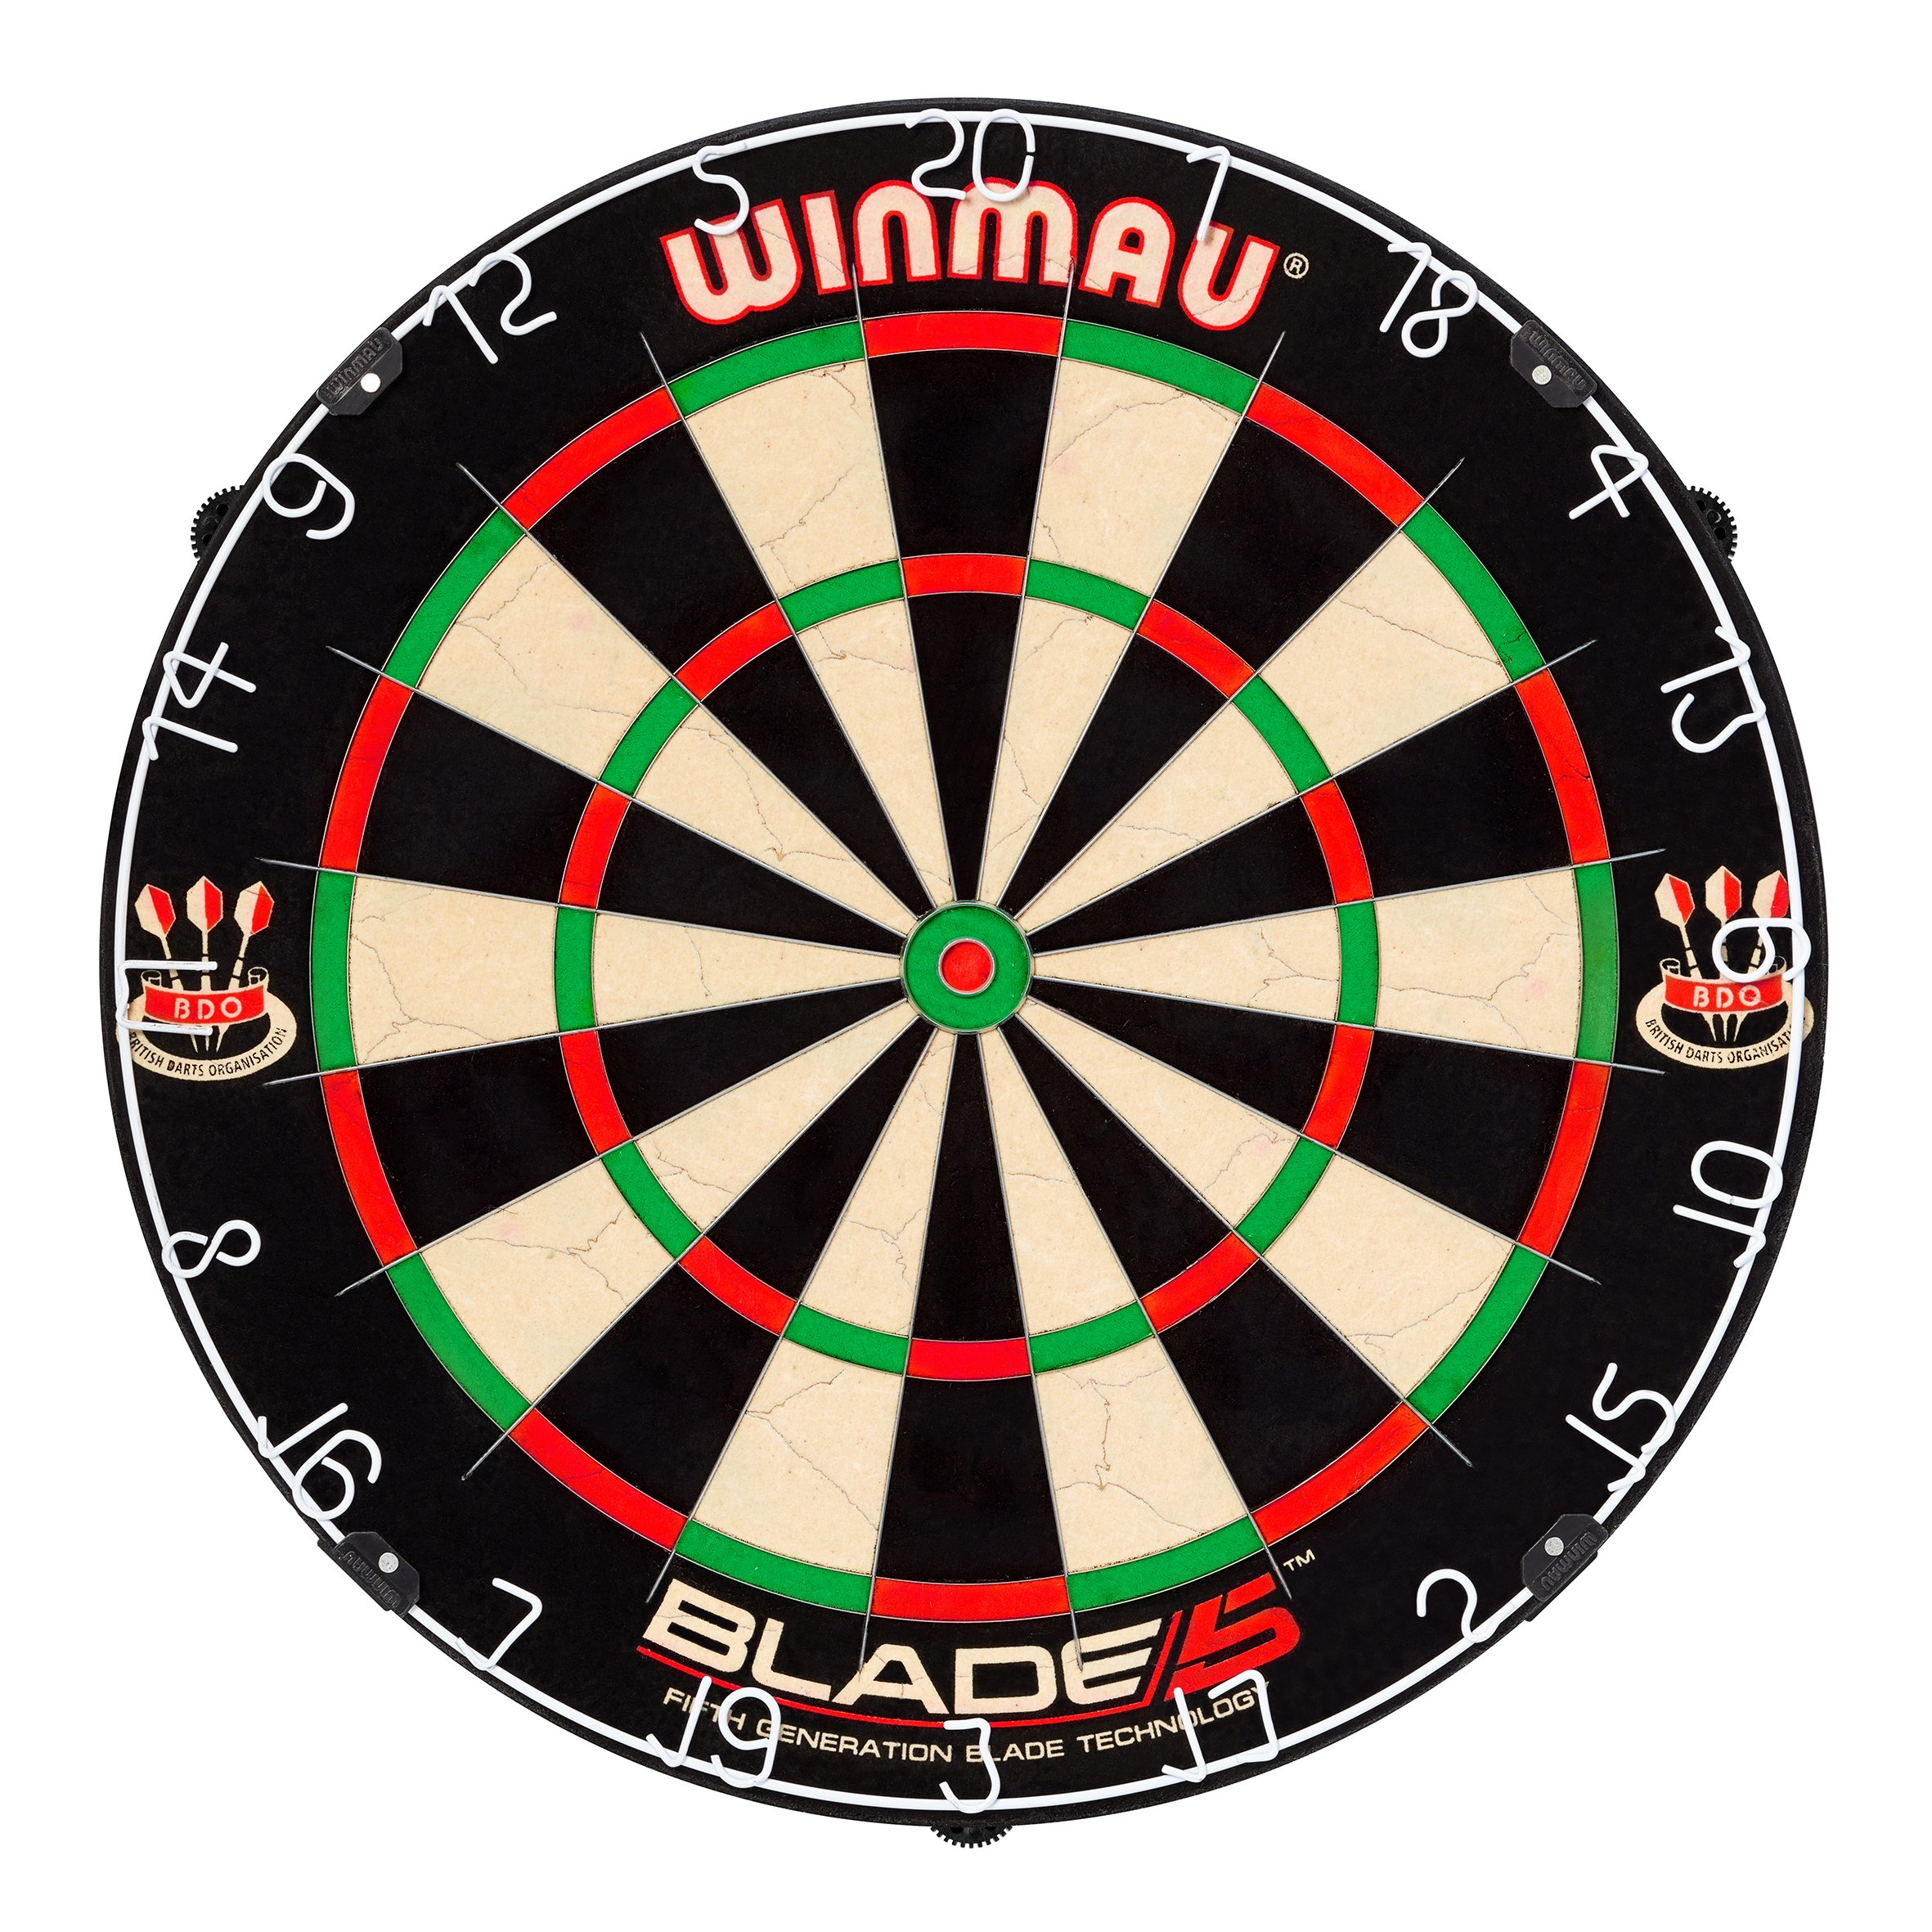 Winmau Blade 5 Bristle Dartboard with All-New Thinner Wiring for Higher Scoring and Reduced Bounce-Outs by Winmau